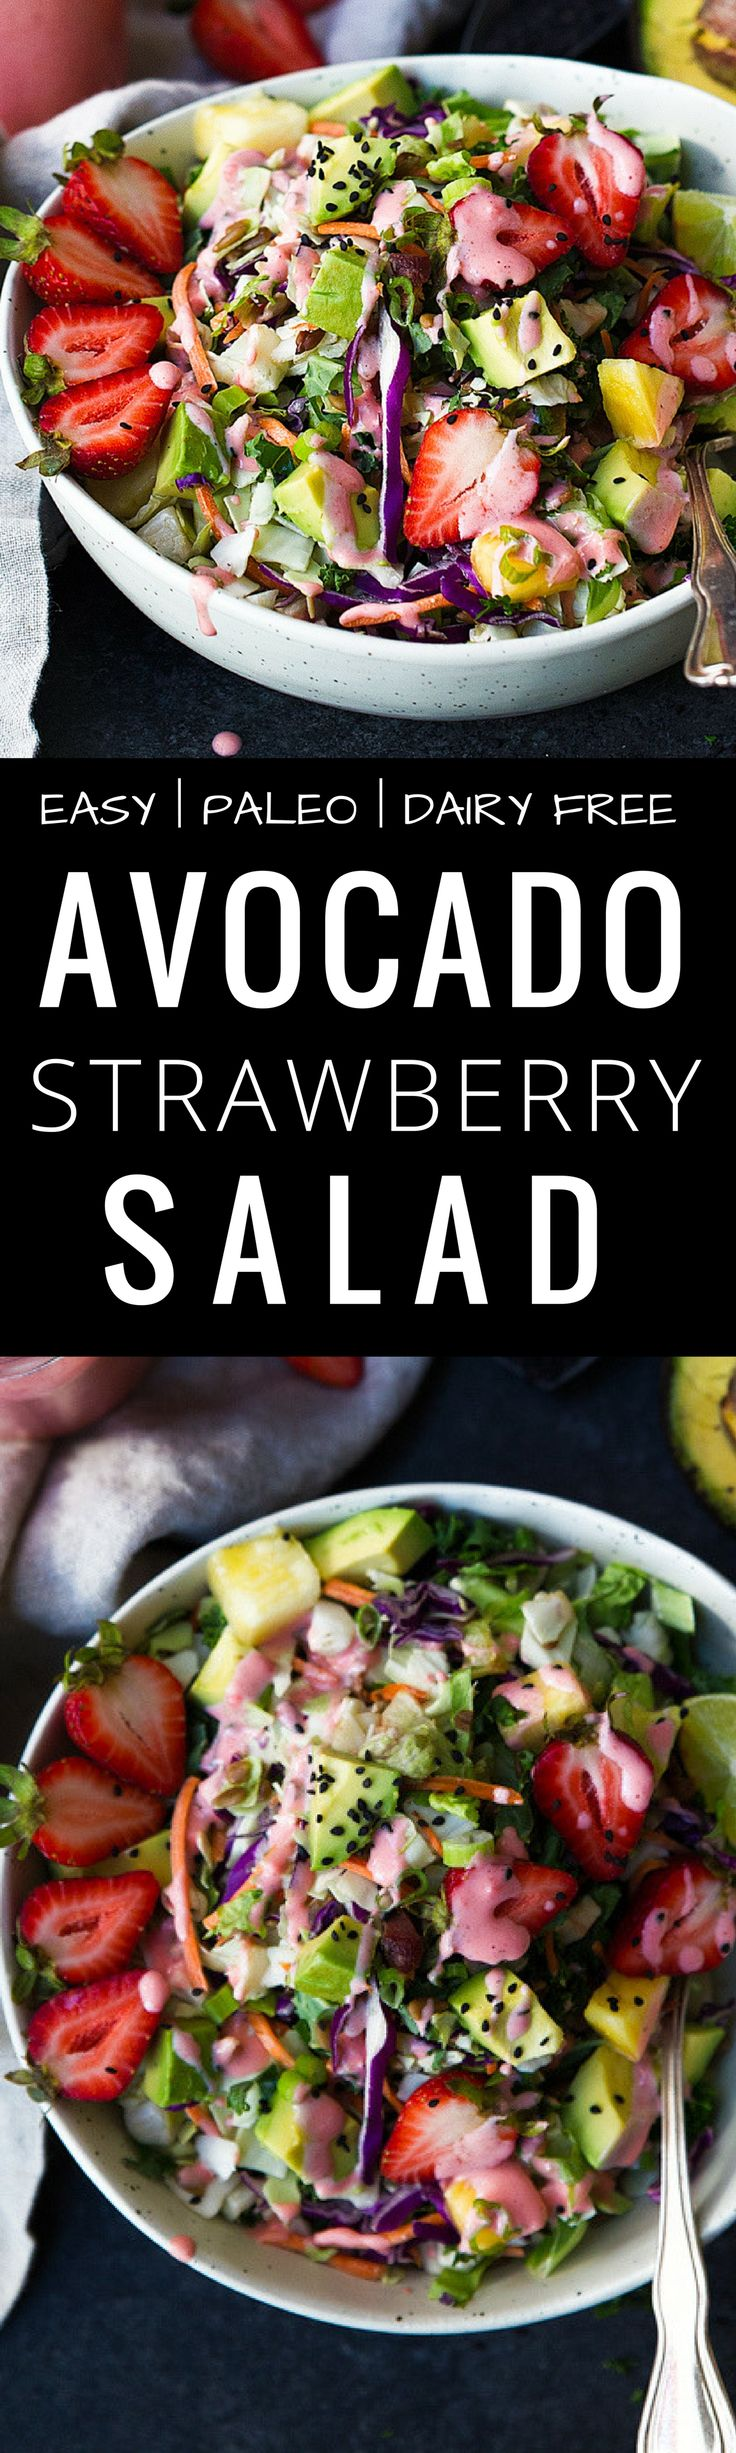 Paleo Strawberry Avocado Salad recipe. EASY PALEO…